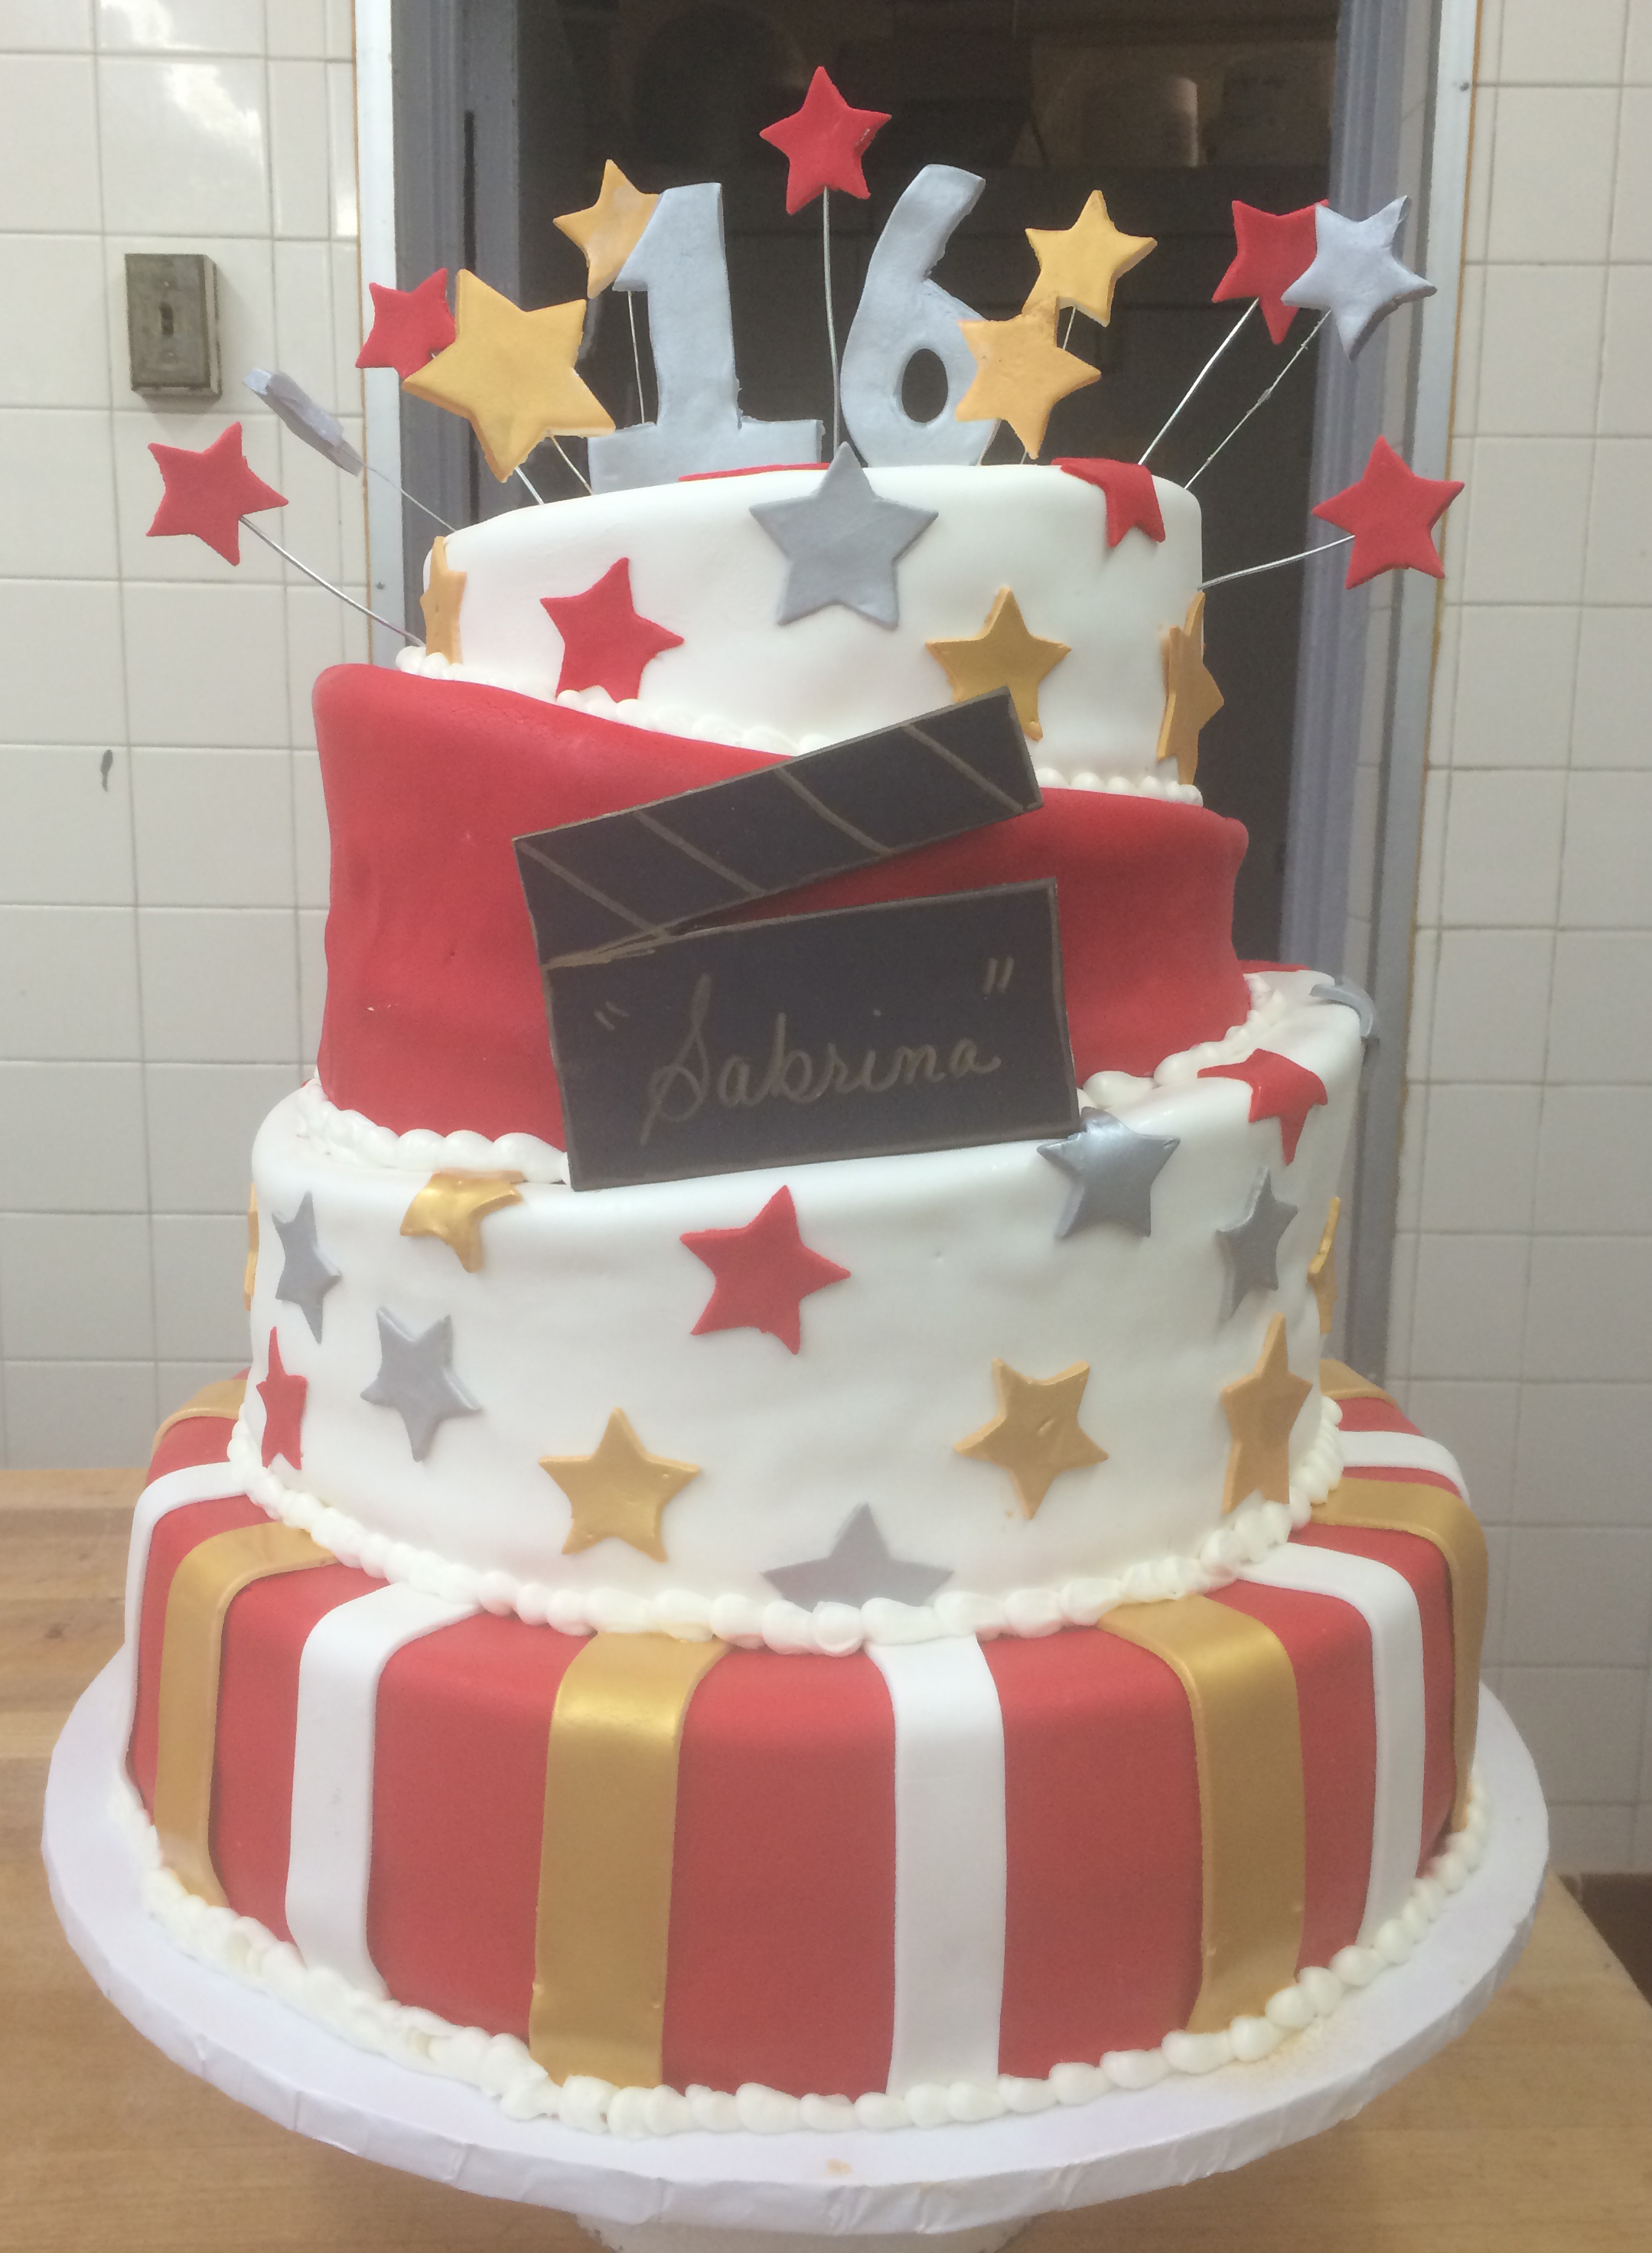 Rolled Fondant, Colored Rolled Fondant, Two Angled Tiers, Clapboard, with Rolled Fondant Stripes, Stars & Floating, Standing Numbers